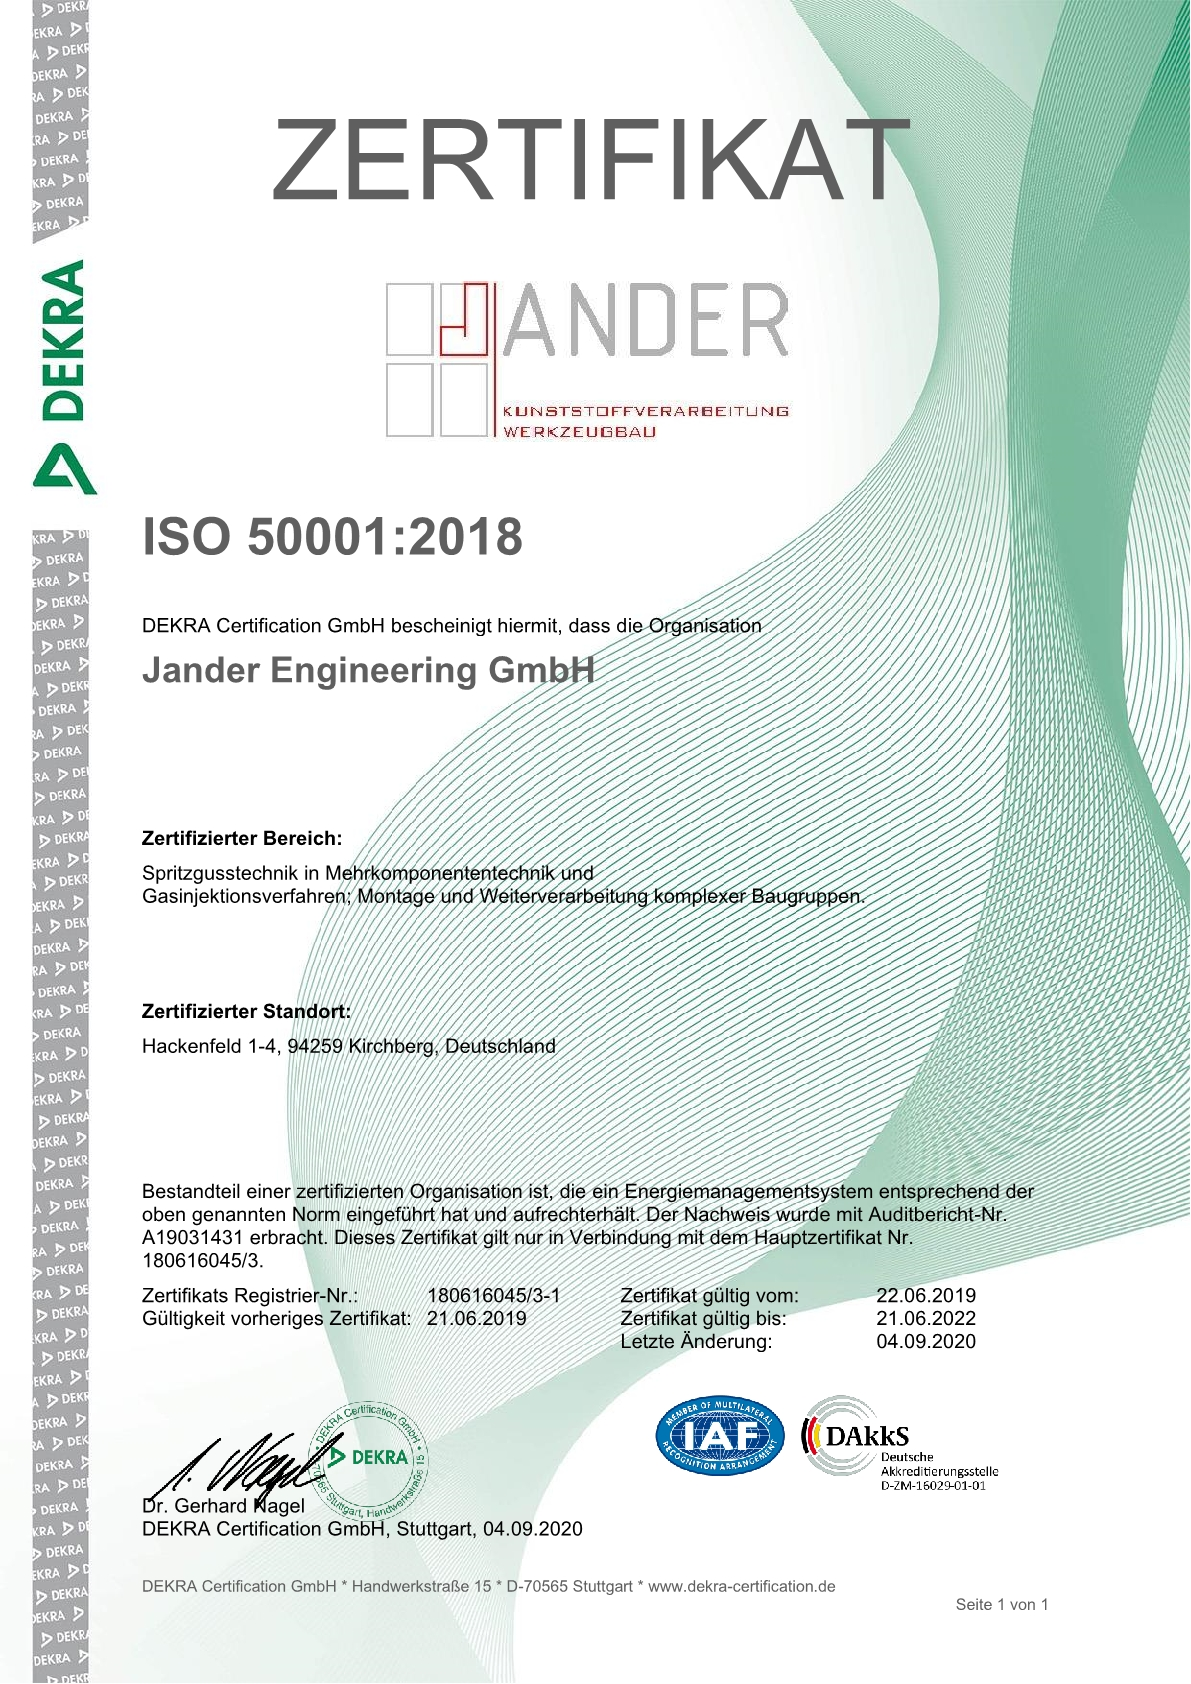 Zertifikat Zert ISO 50001 1 Jander Engineering